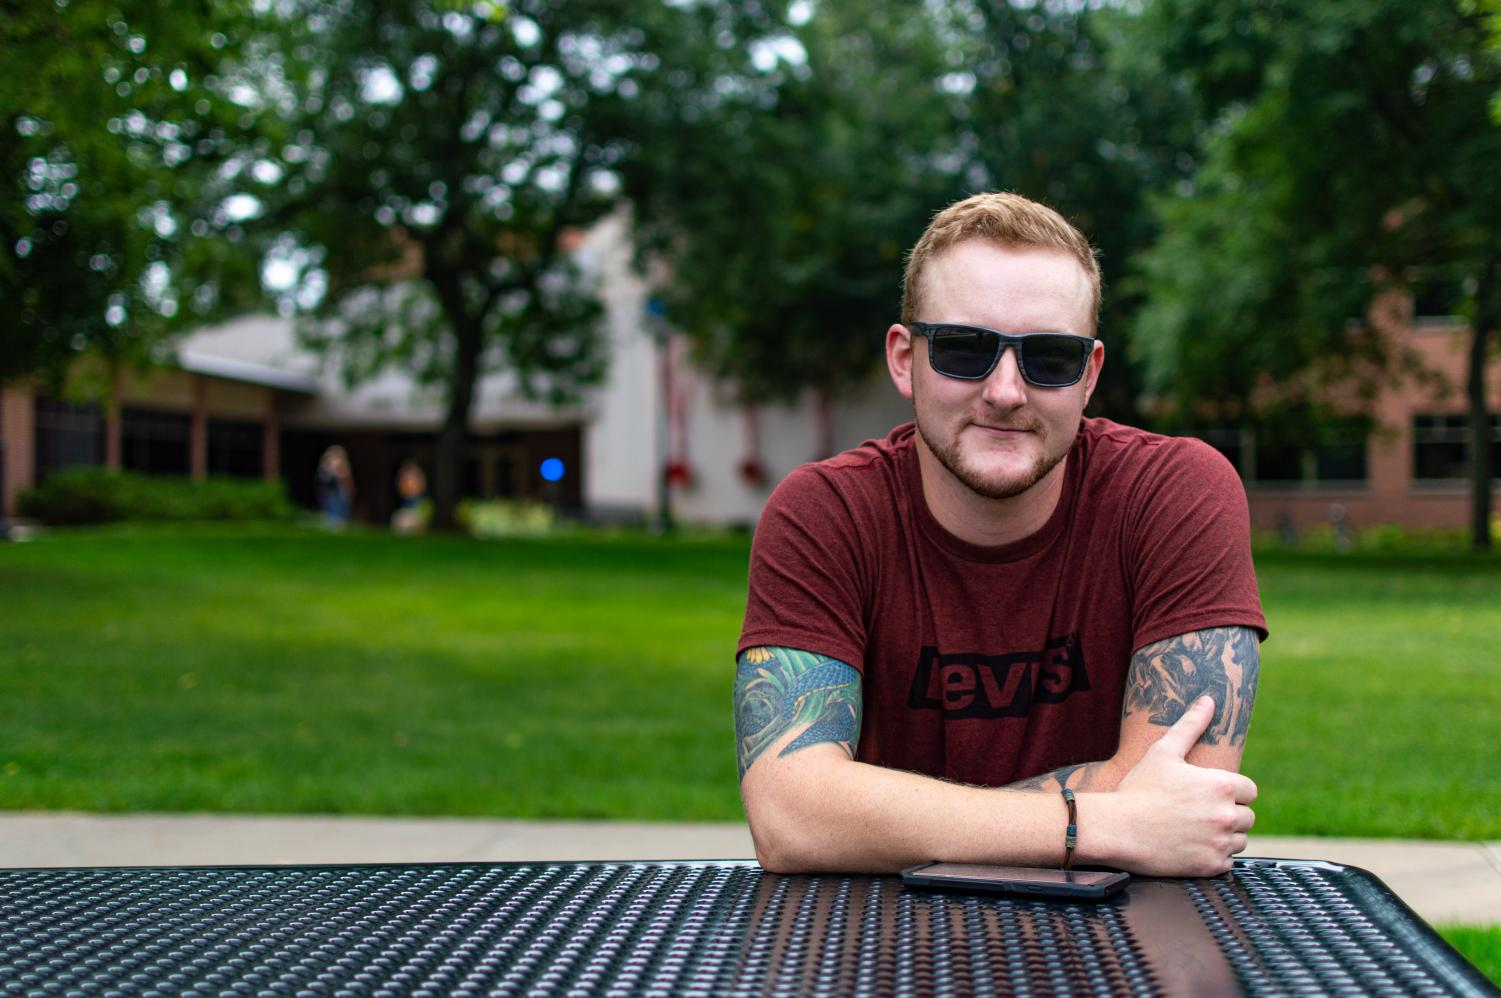 "Myles Isenberger ""I'm going to school for computer science and I'm excited because I've been out of school for a couple of years so its good to be back. I'm excited to see how it goes, the friends I can make and experiences I can have."" Photo by Carly Rundle-Borchert."